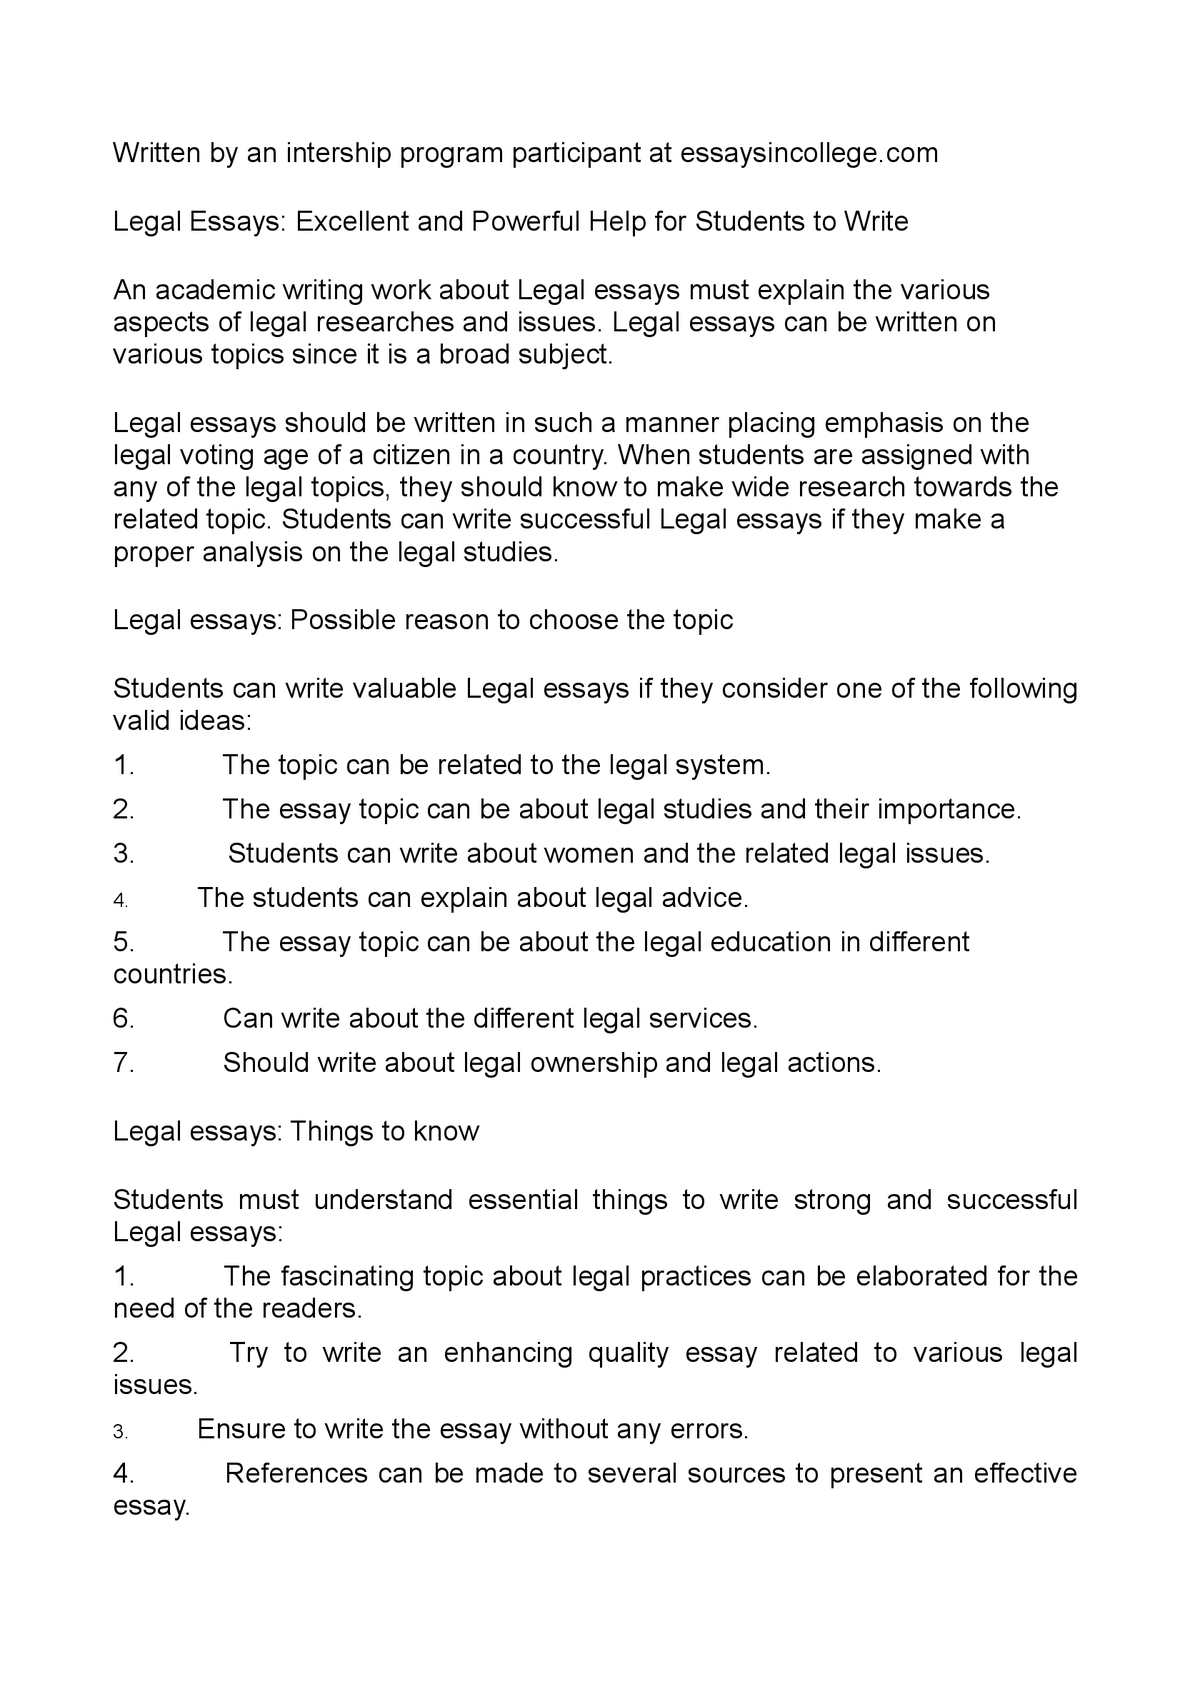 Expository Essay Rules Calamo  Legal Essays Excellent And Powerful Help For Students To Write Controversy Essay also Writing An Essay Structure Calamo  Legal Essays Excellent And Powerful Help For Students To  Example Of Essay Speech